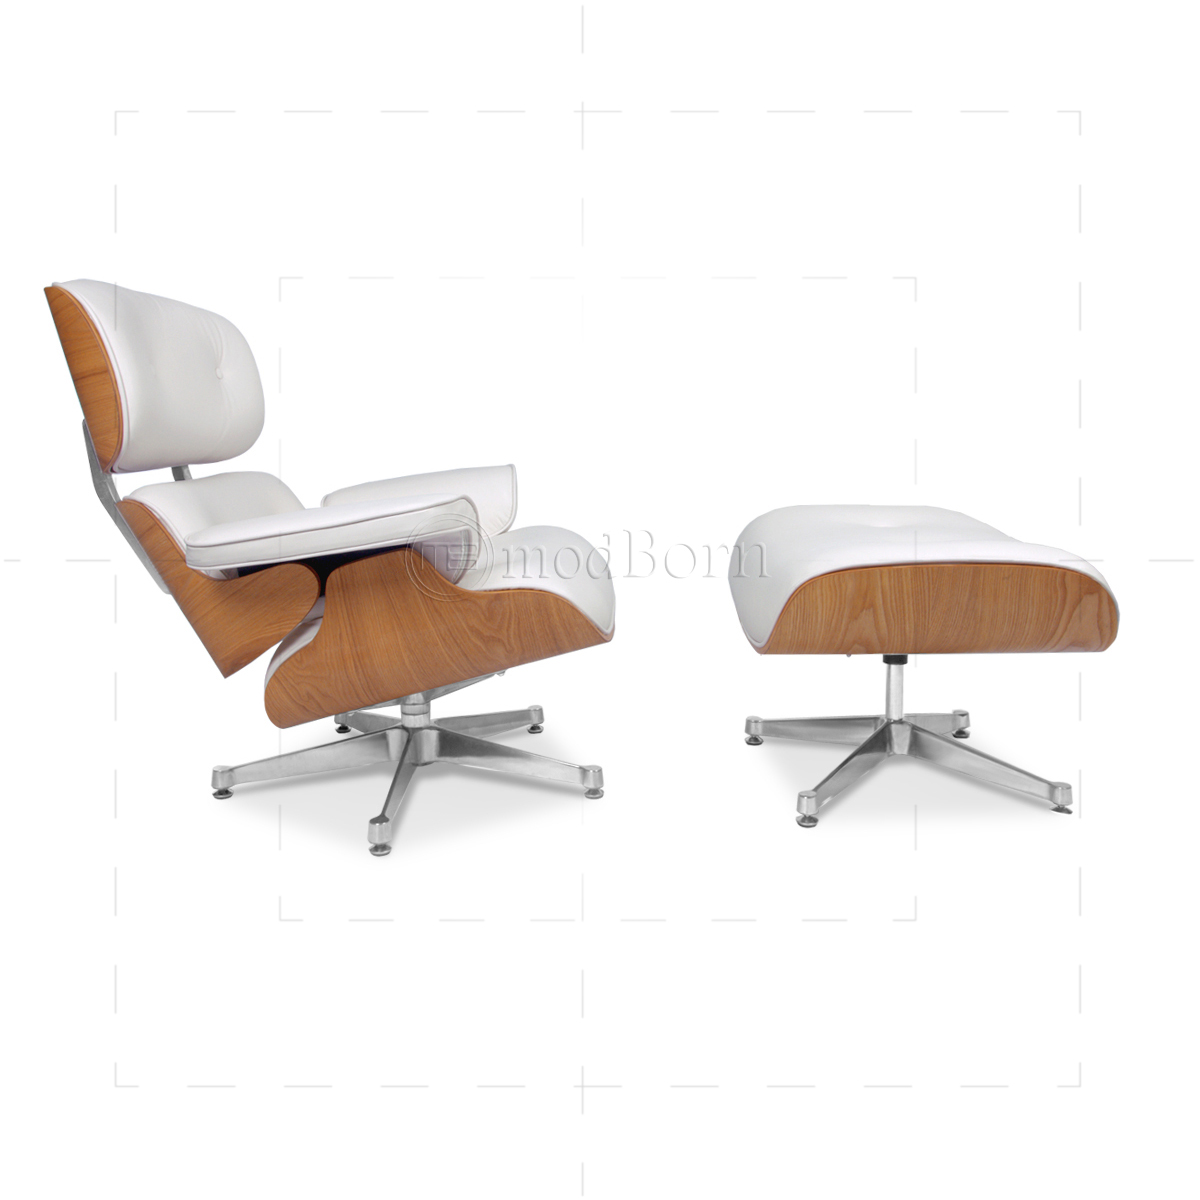 Eames Inspired Lounge Chairs Eames Style Lounge Chair And Ottoman White Leather Ash